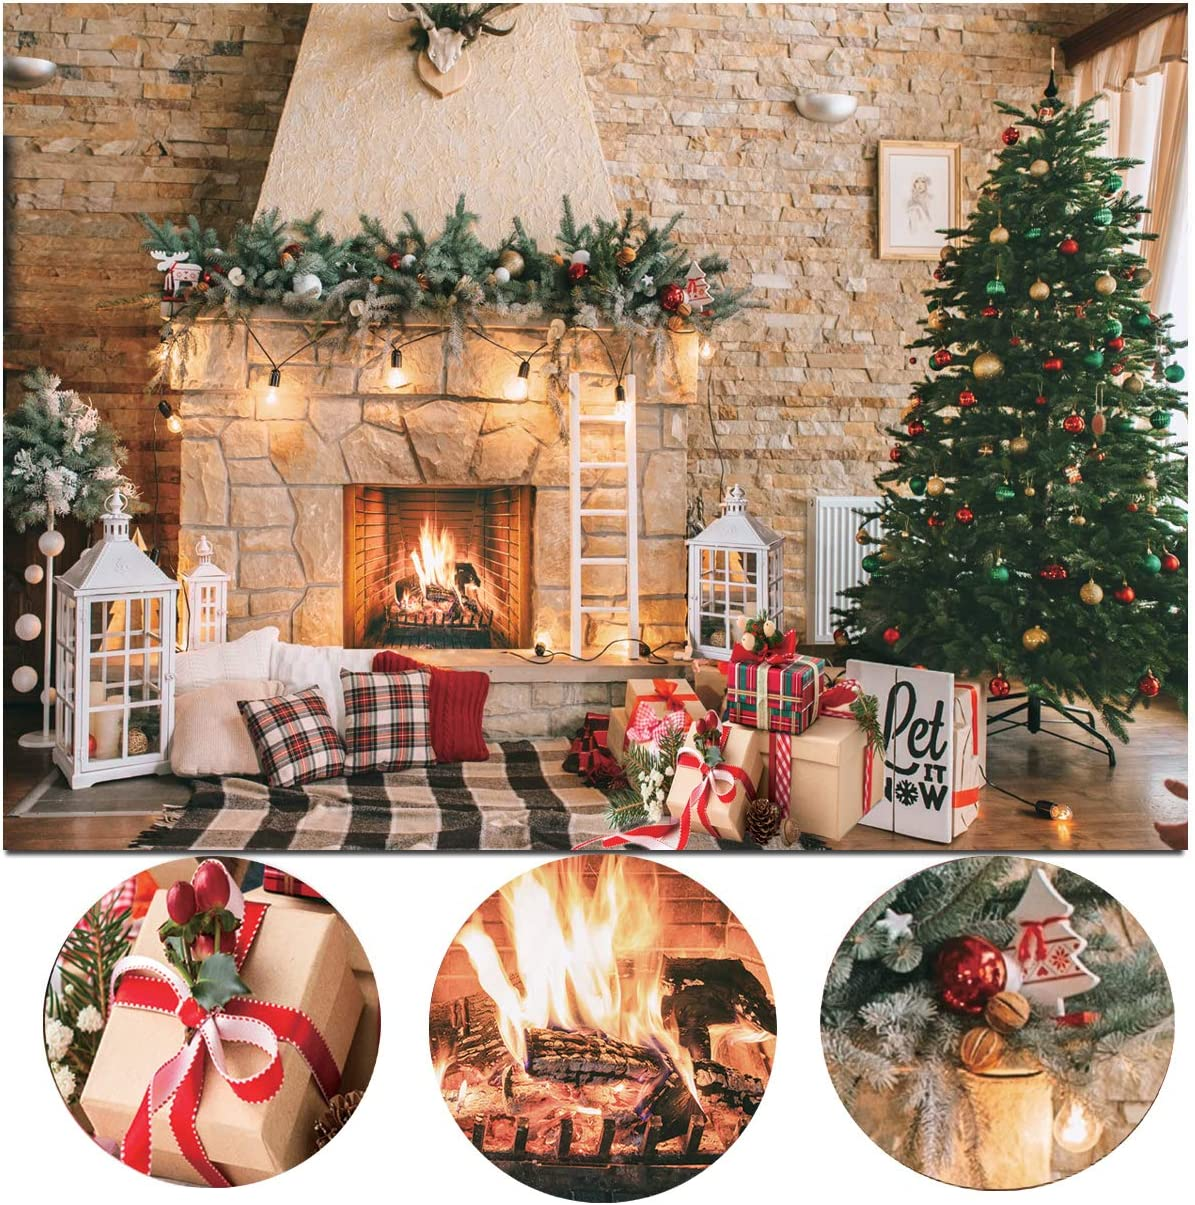 Dudaacvt 7x5ft Christmas Fireplace Theme Backdrop for Photography Christmas Photography Backdrop Merry Xmas Sock Gift Decorations Family Party Party Supplies Banner Booth Props D470